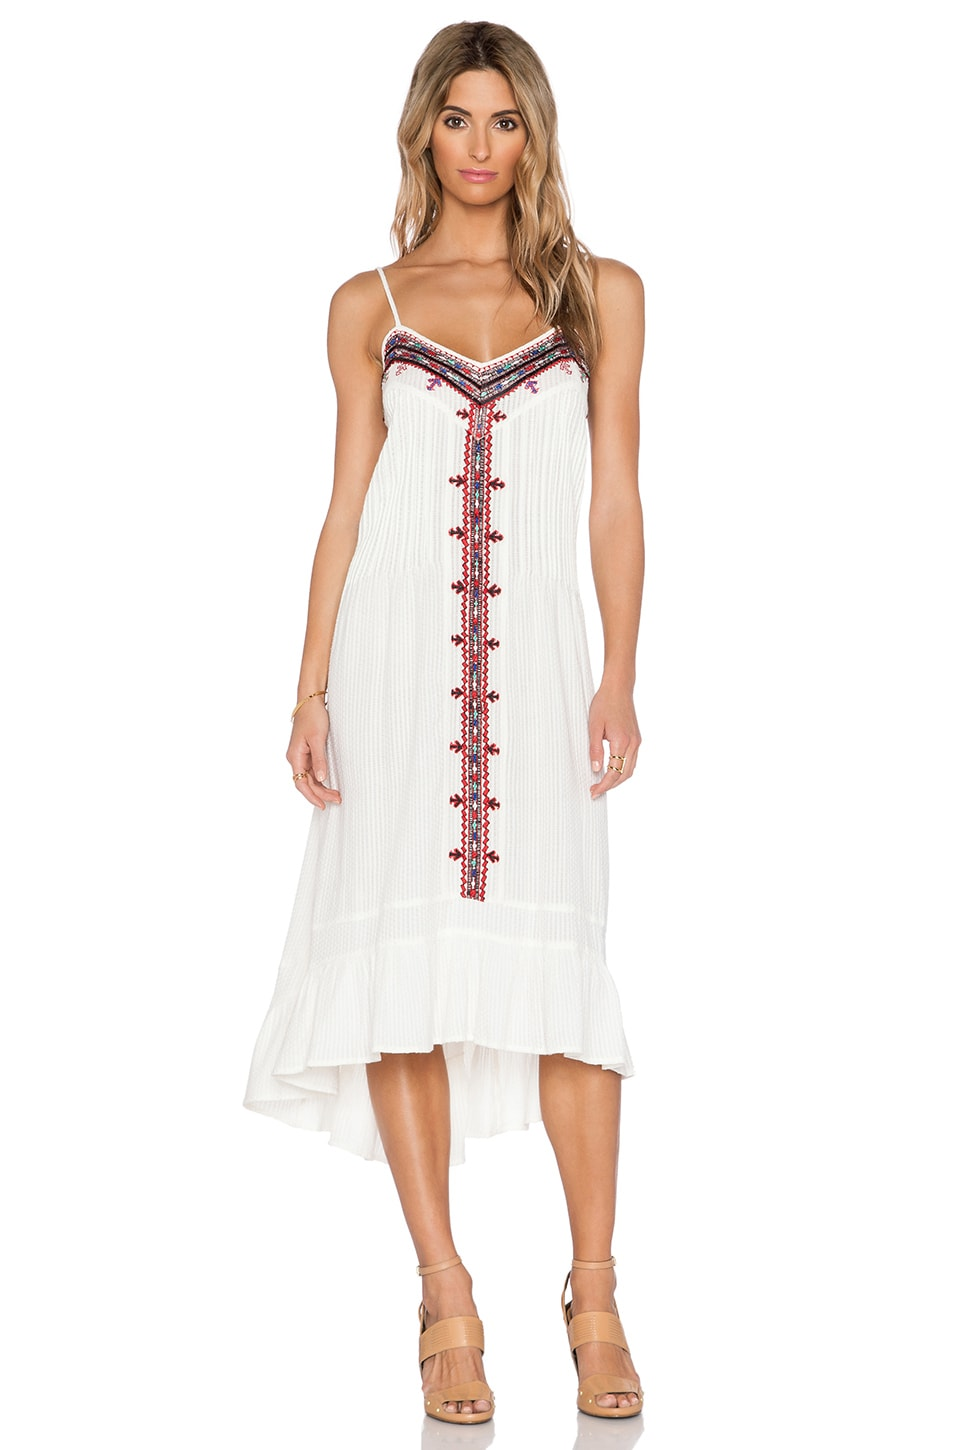 Twelfth Street By Cynthia Vincent Embroidered Western Dress in Ivory